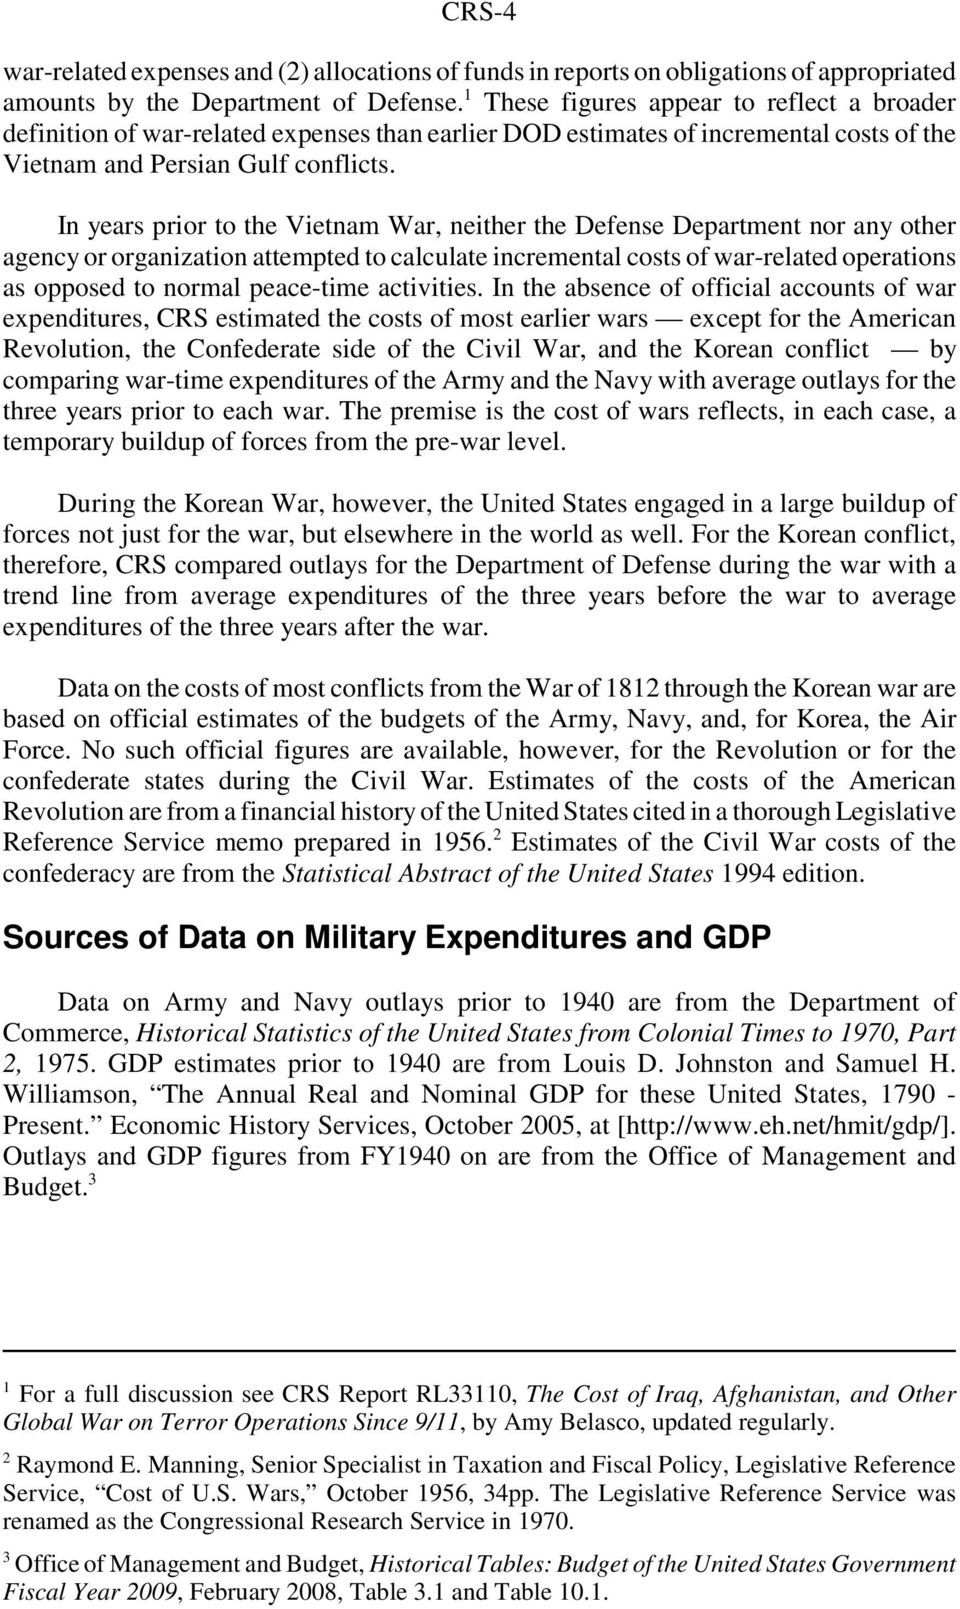 In years prior to the Vietnam War, neither the Defense Department nor any other agency or organization attempted to calculate incremental costs of war-related operations as opposed to normal